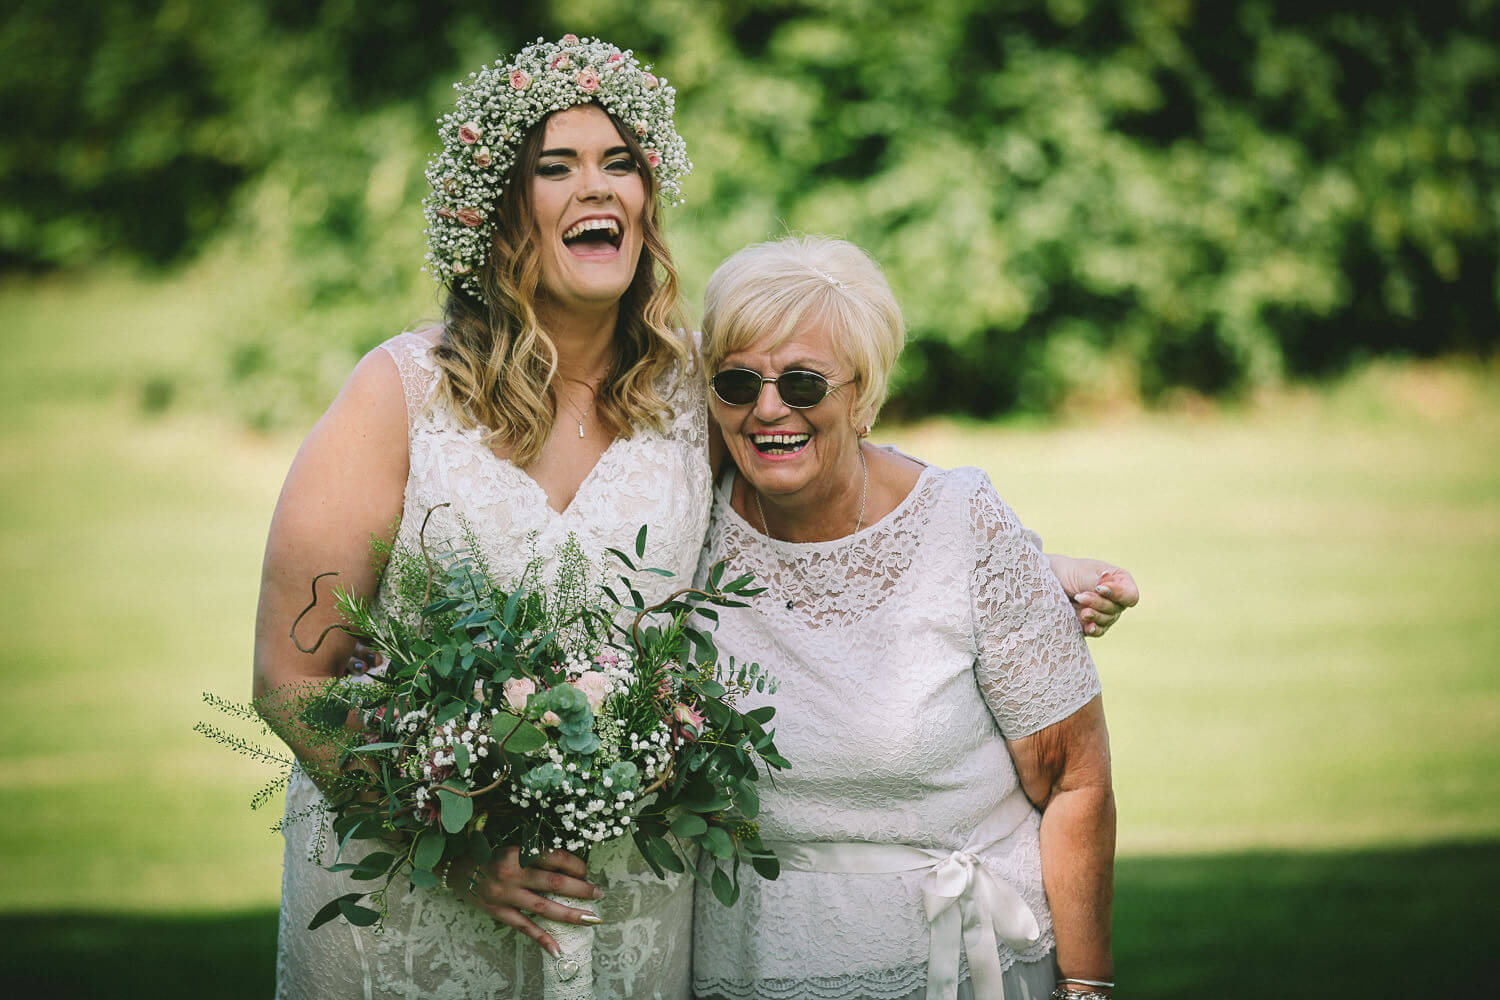 Bride with flowers in hair laughing with her mum on wedding day